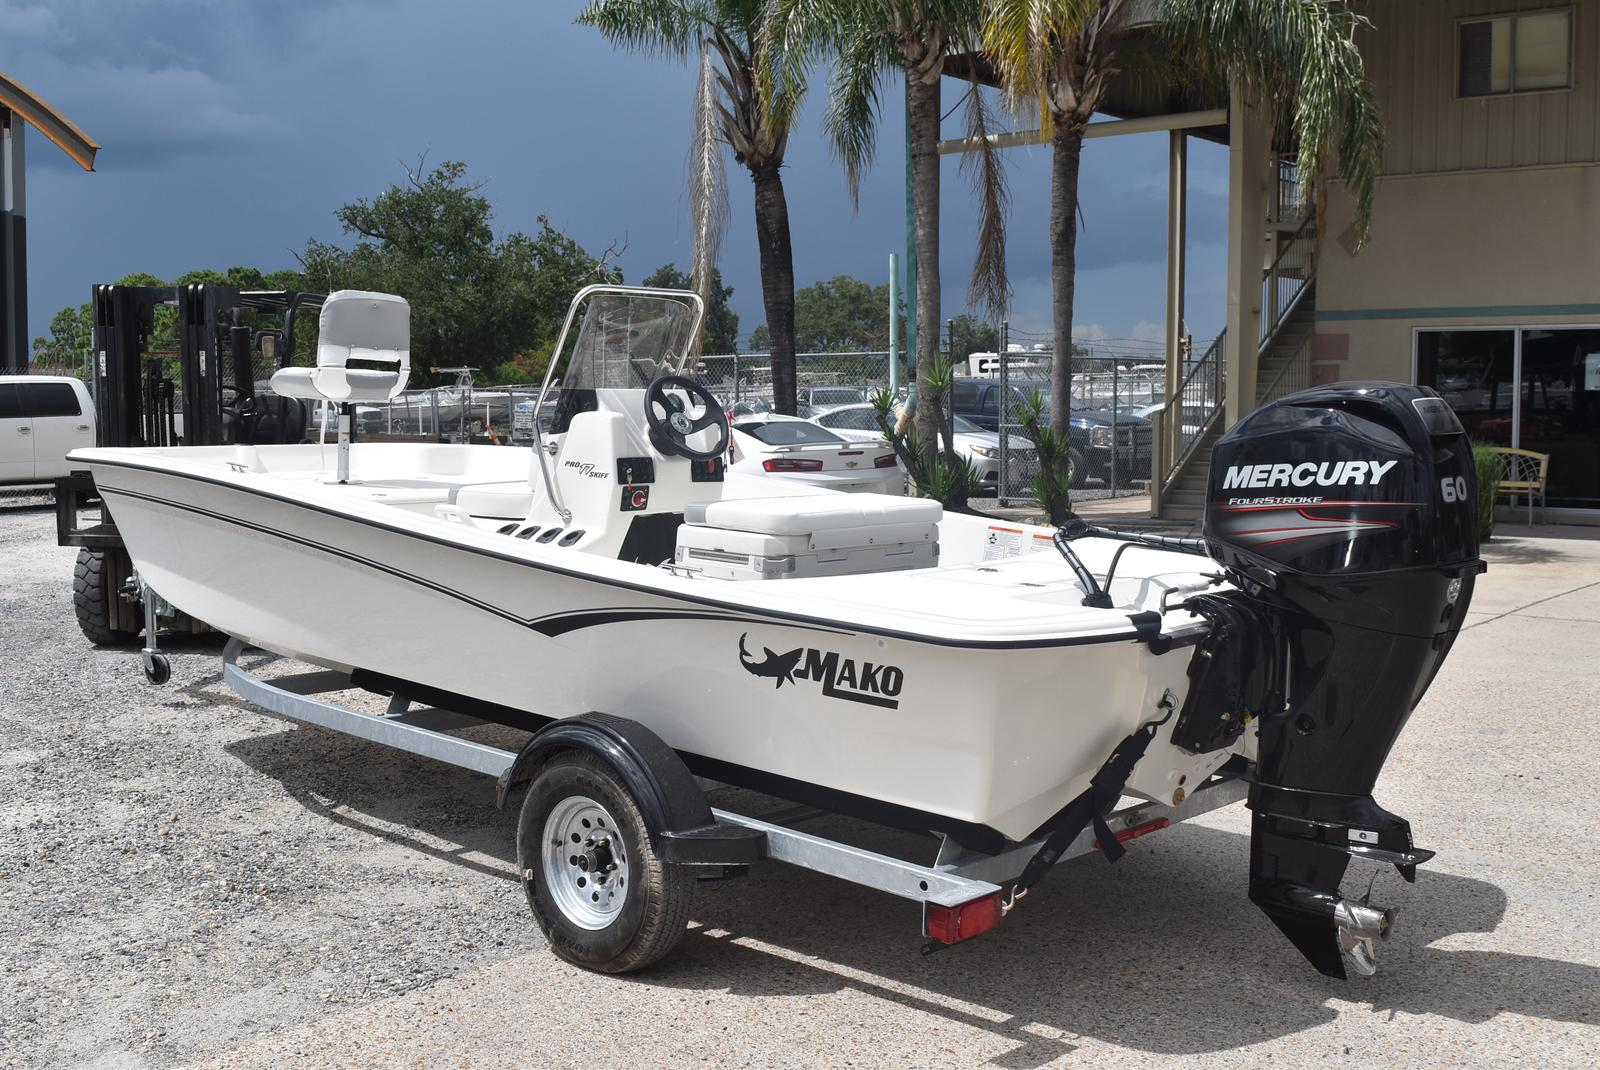 2020 Mako boat for sale, model of the boat is Pro Skiff 17, 75 ELPT & Image # 179 of 702